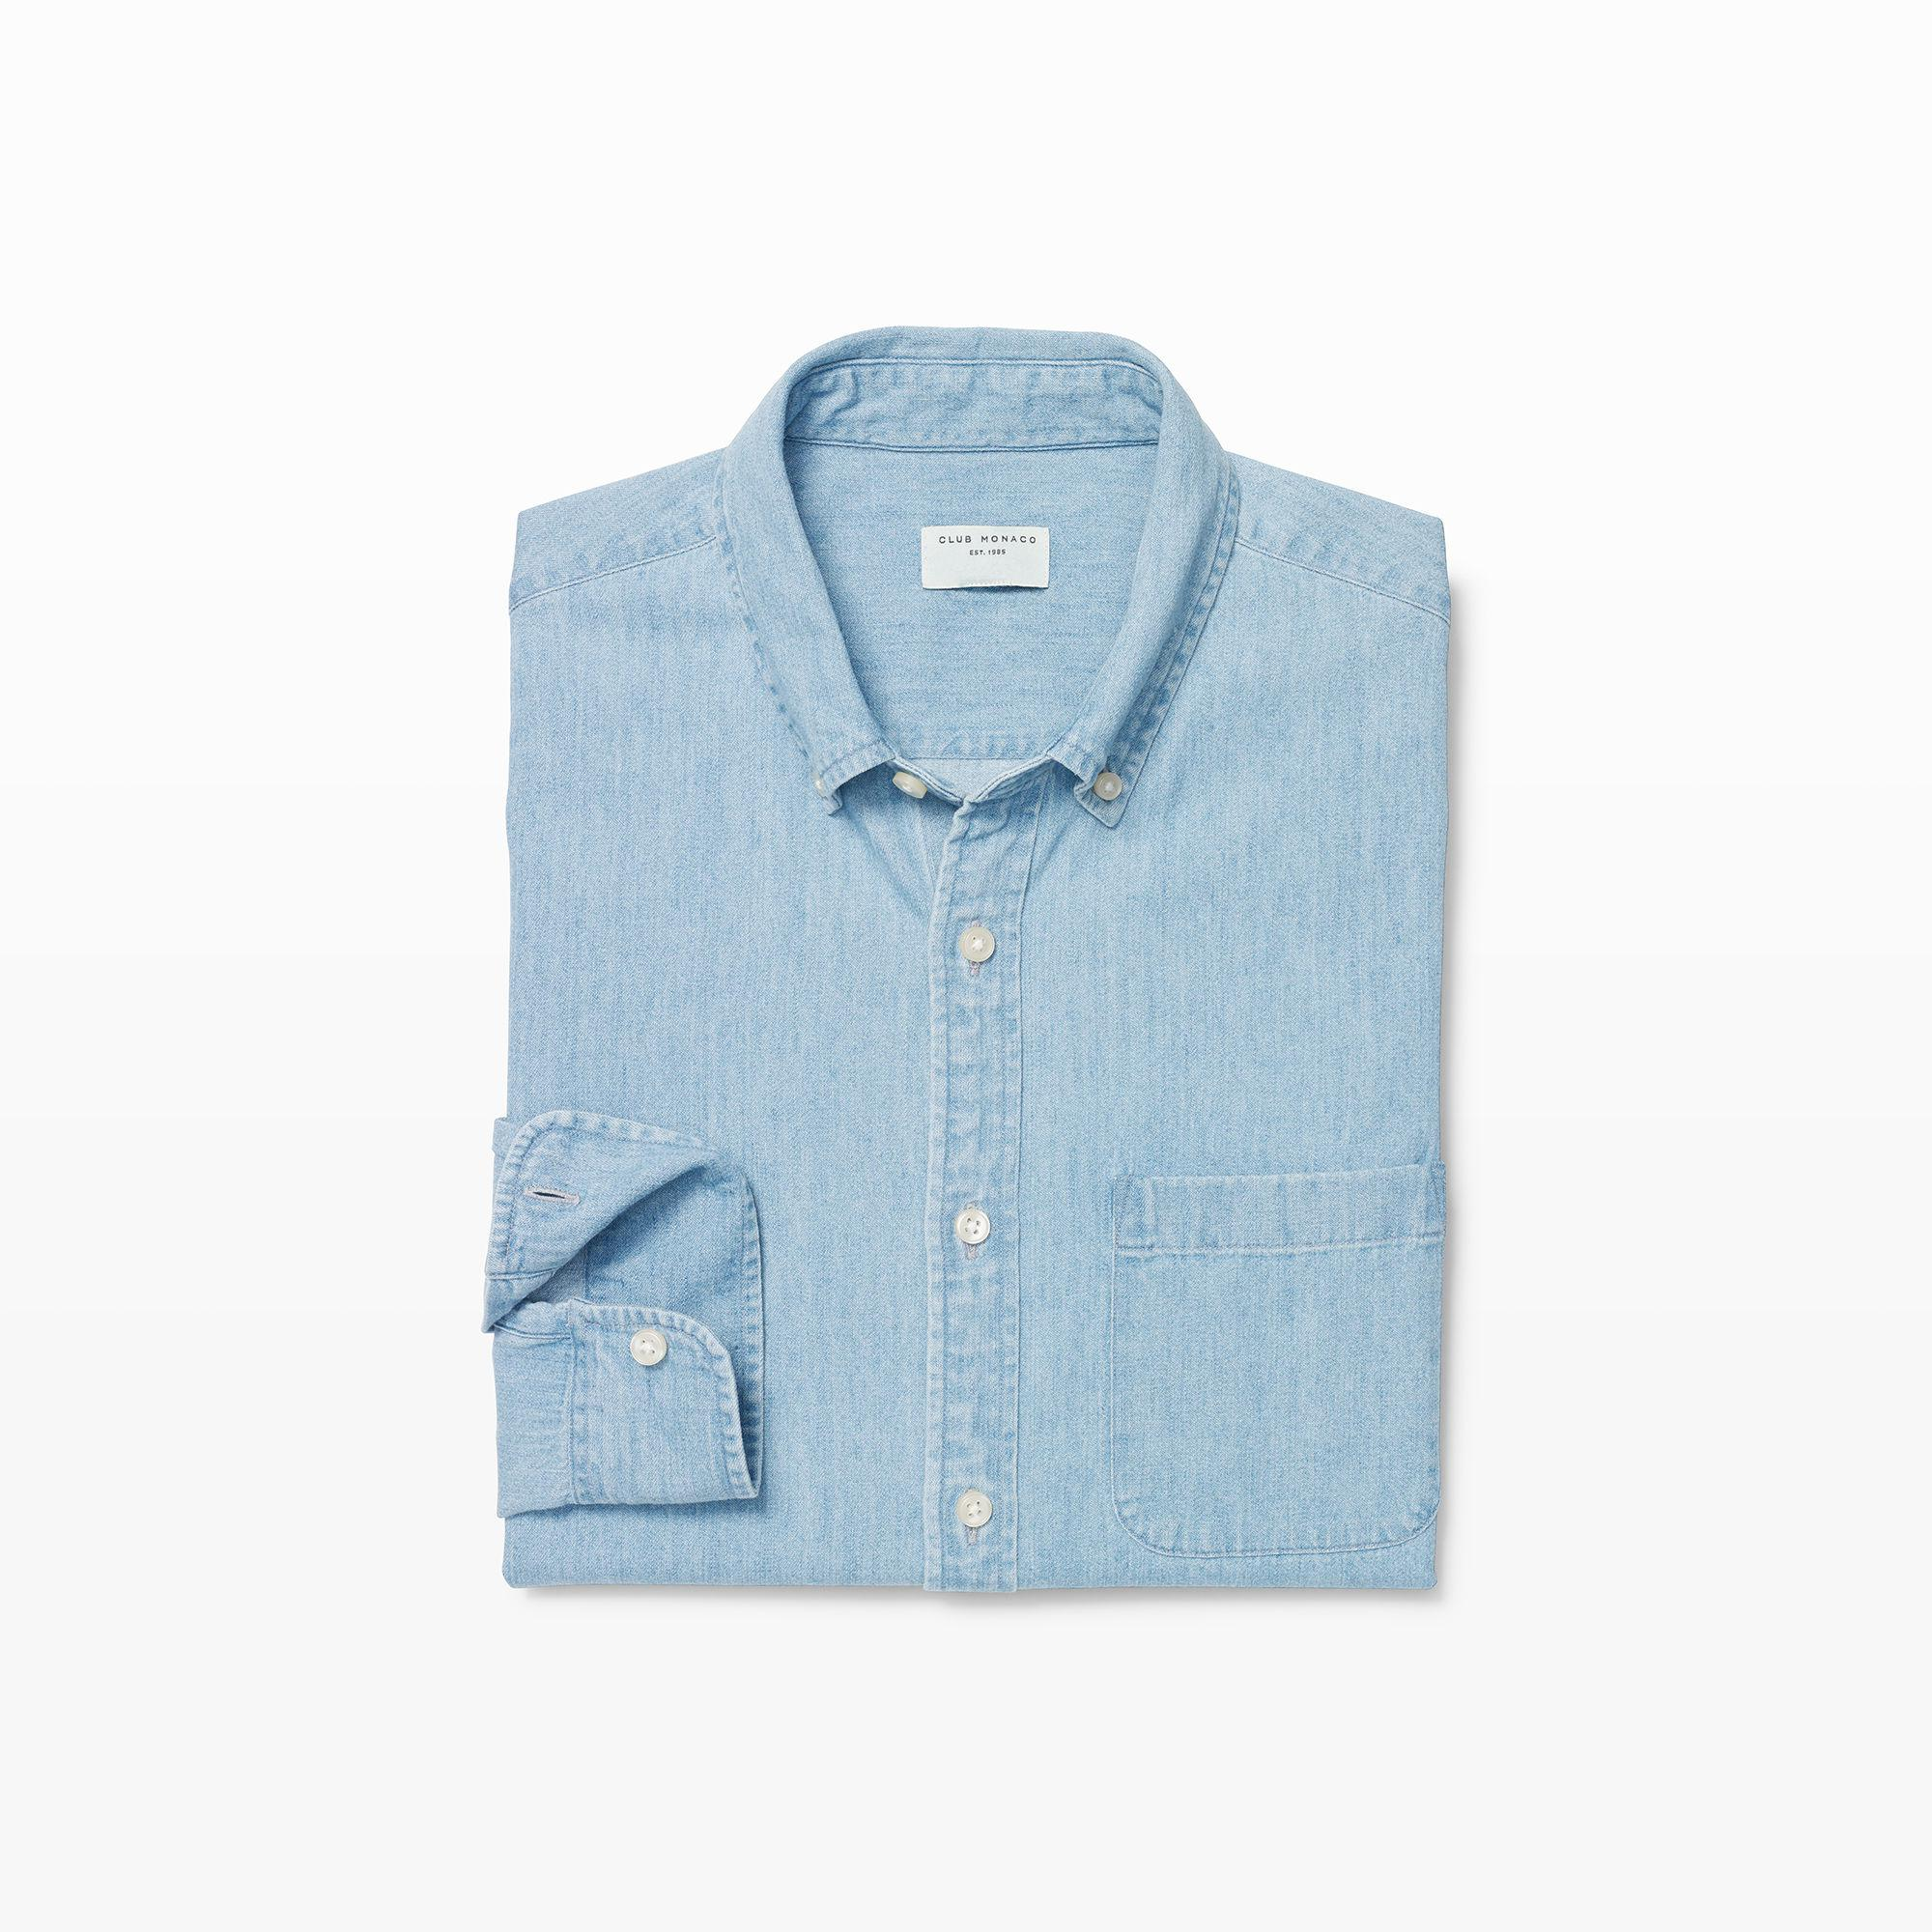 98523d4397b Lyst - Club Monaco Slim Denim Shirt in Blue for Men